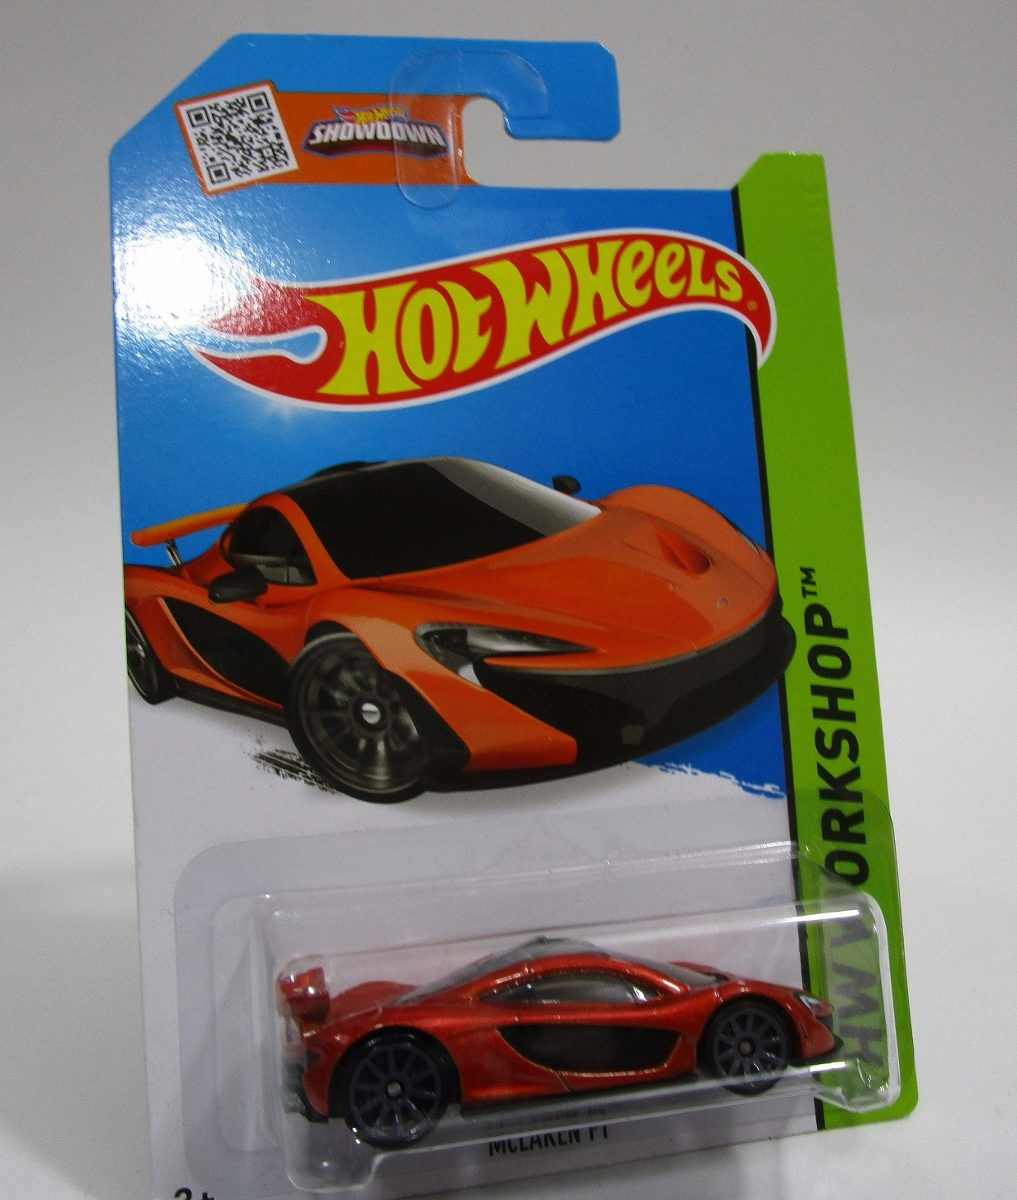 Hot Wheels Fotos ~ Carro Deportivo Carreras Mclaren P1 Hot Wheels Ta2 $ 26 900 en Mercado Libre